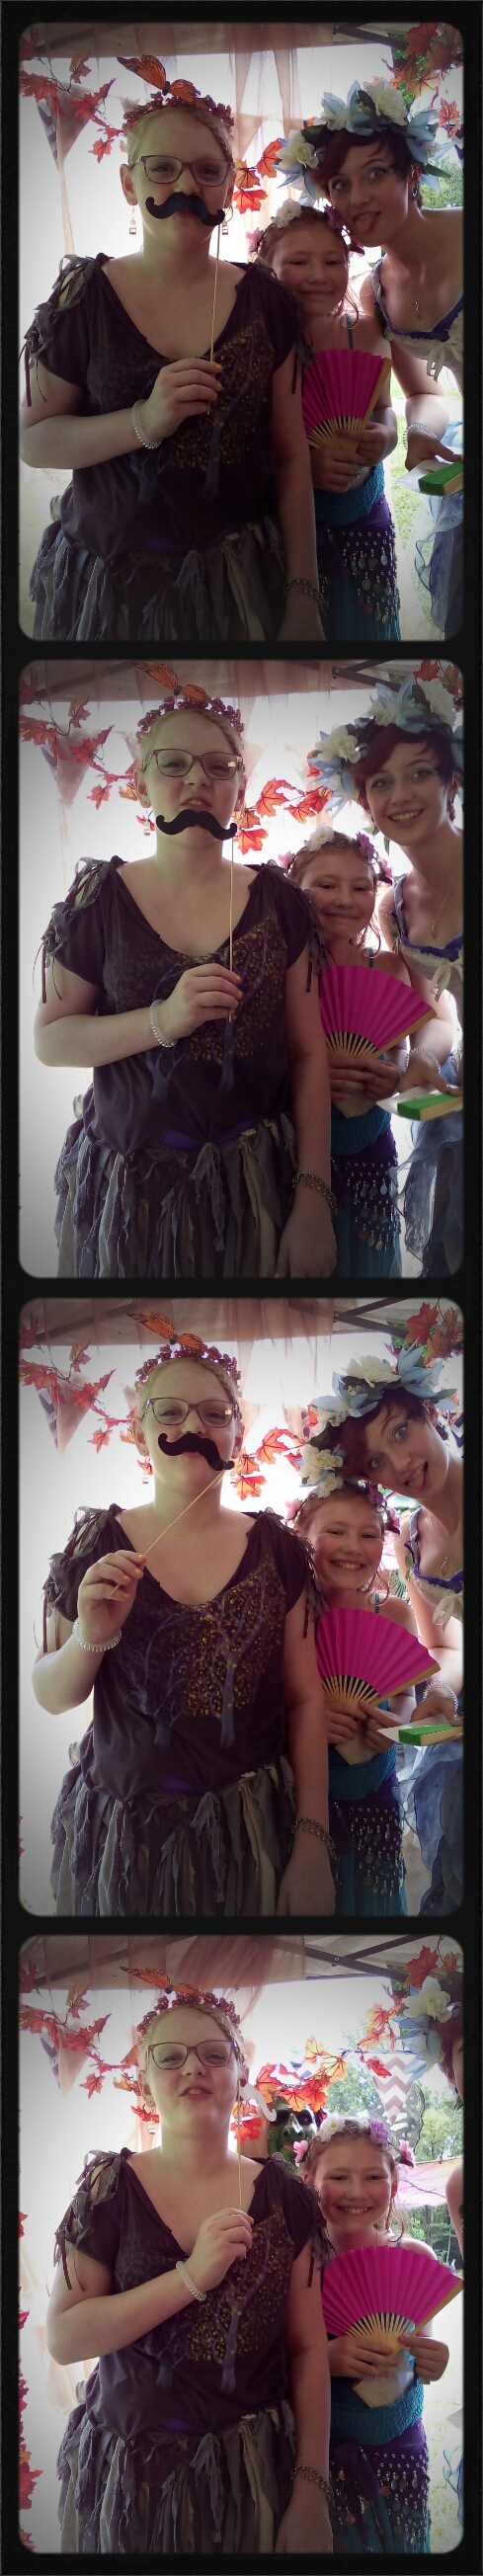 Pocketbooth_20150614120712